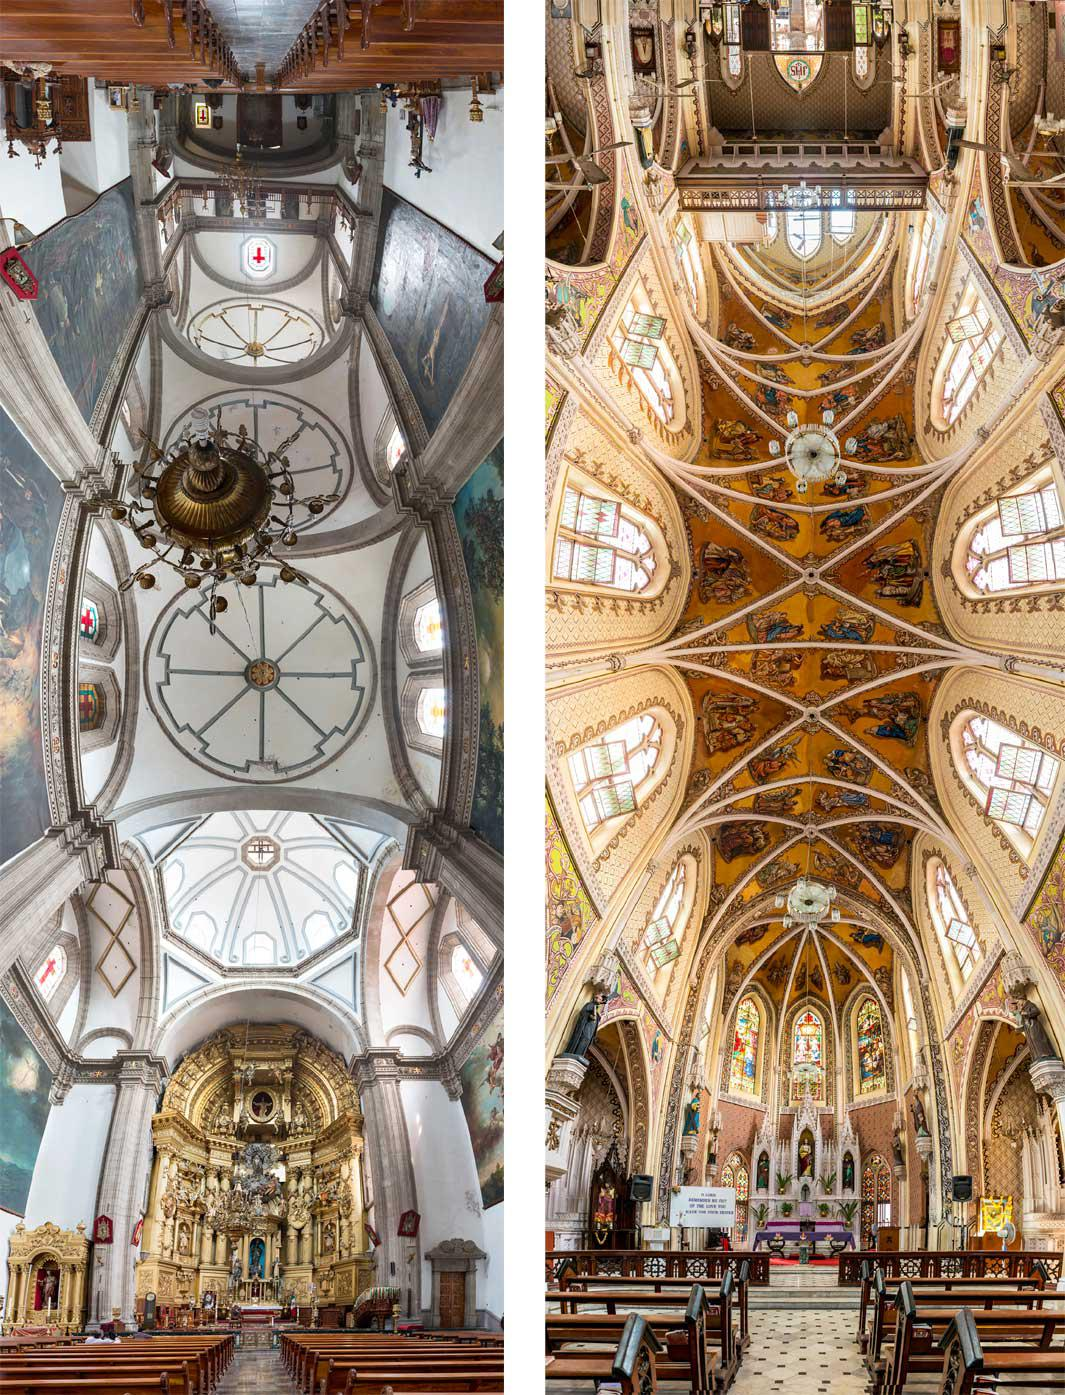 Left: Iglesia de San Francisco, Mexico City. Right: Catherdral of the Holy Name, Mumbai, India.